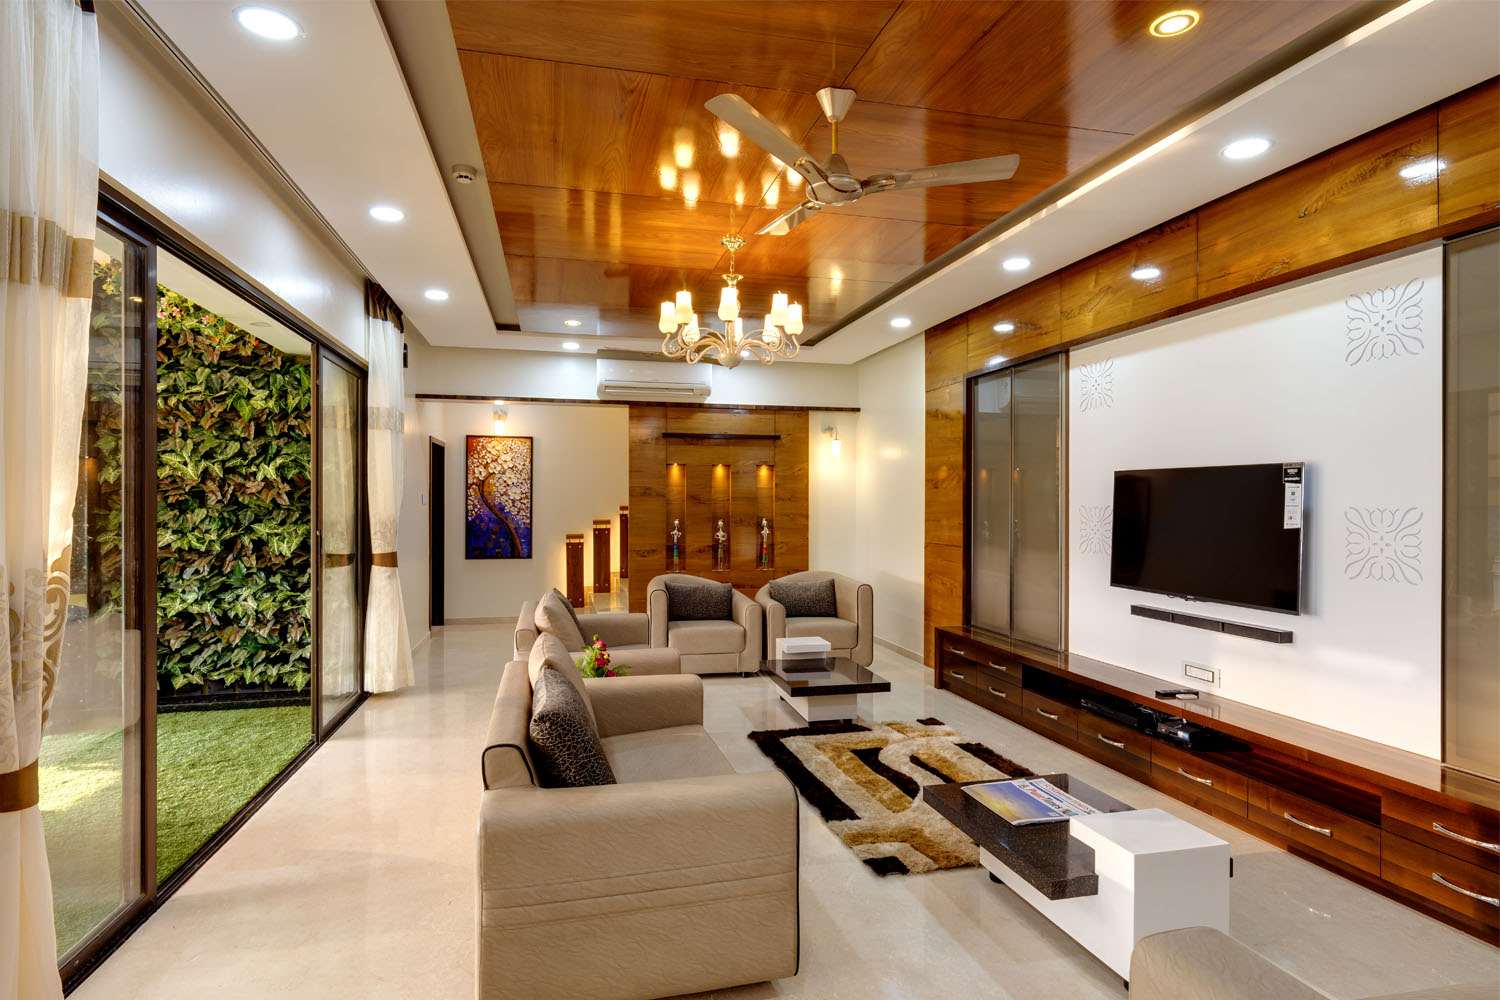 How much do interior designers charge in pune www for Living room interior design ideas india